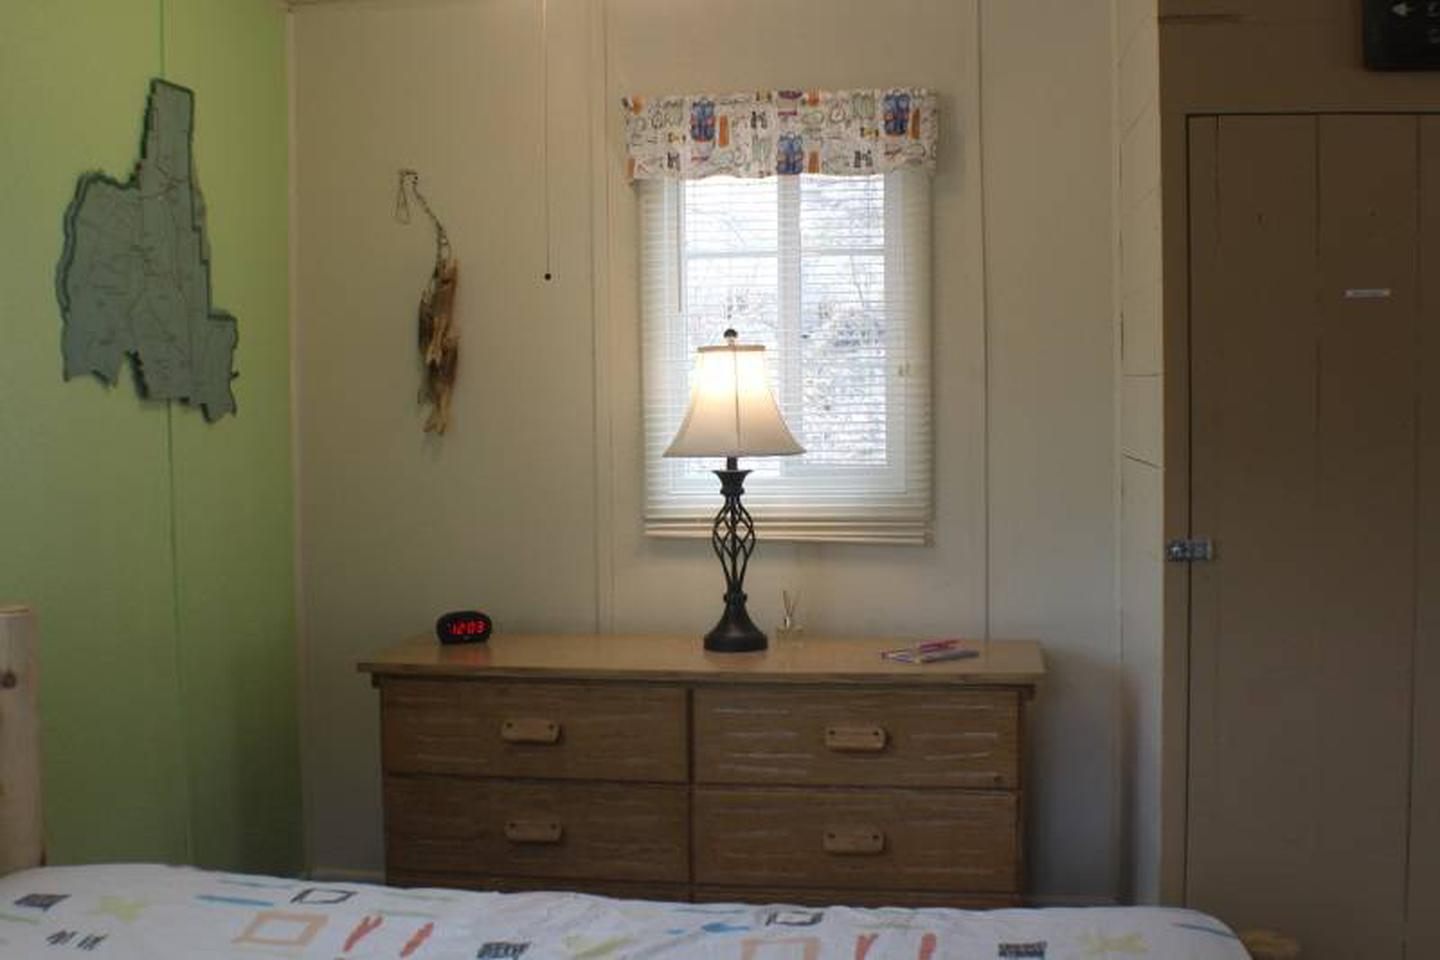 Dresser with lampCabin 1: View to right of full bed. Dresser with lamp, alarm clock with USB charging port.